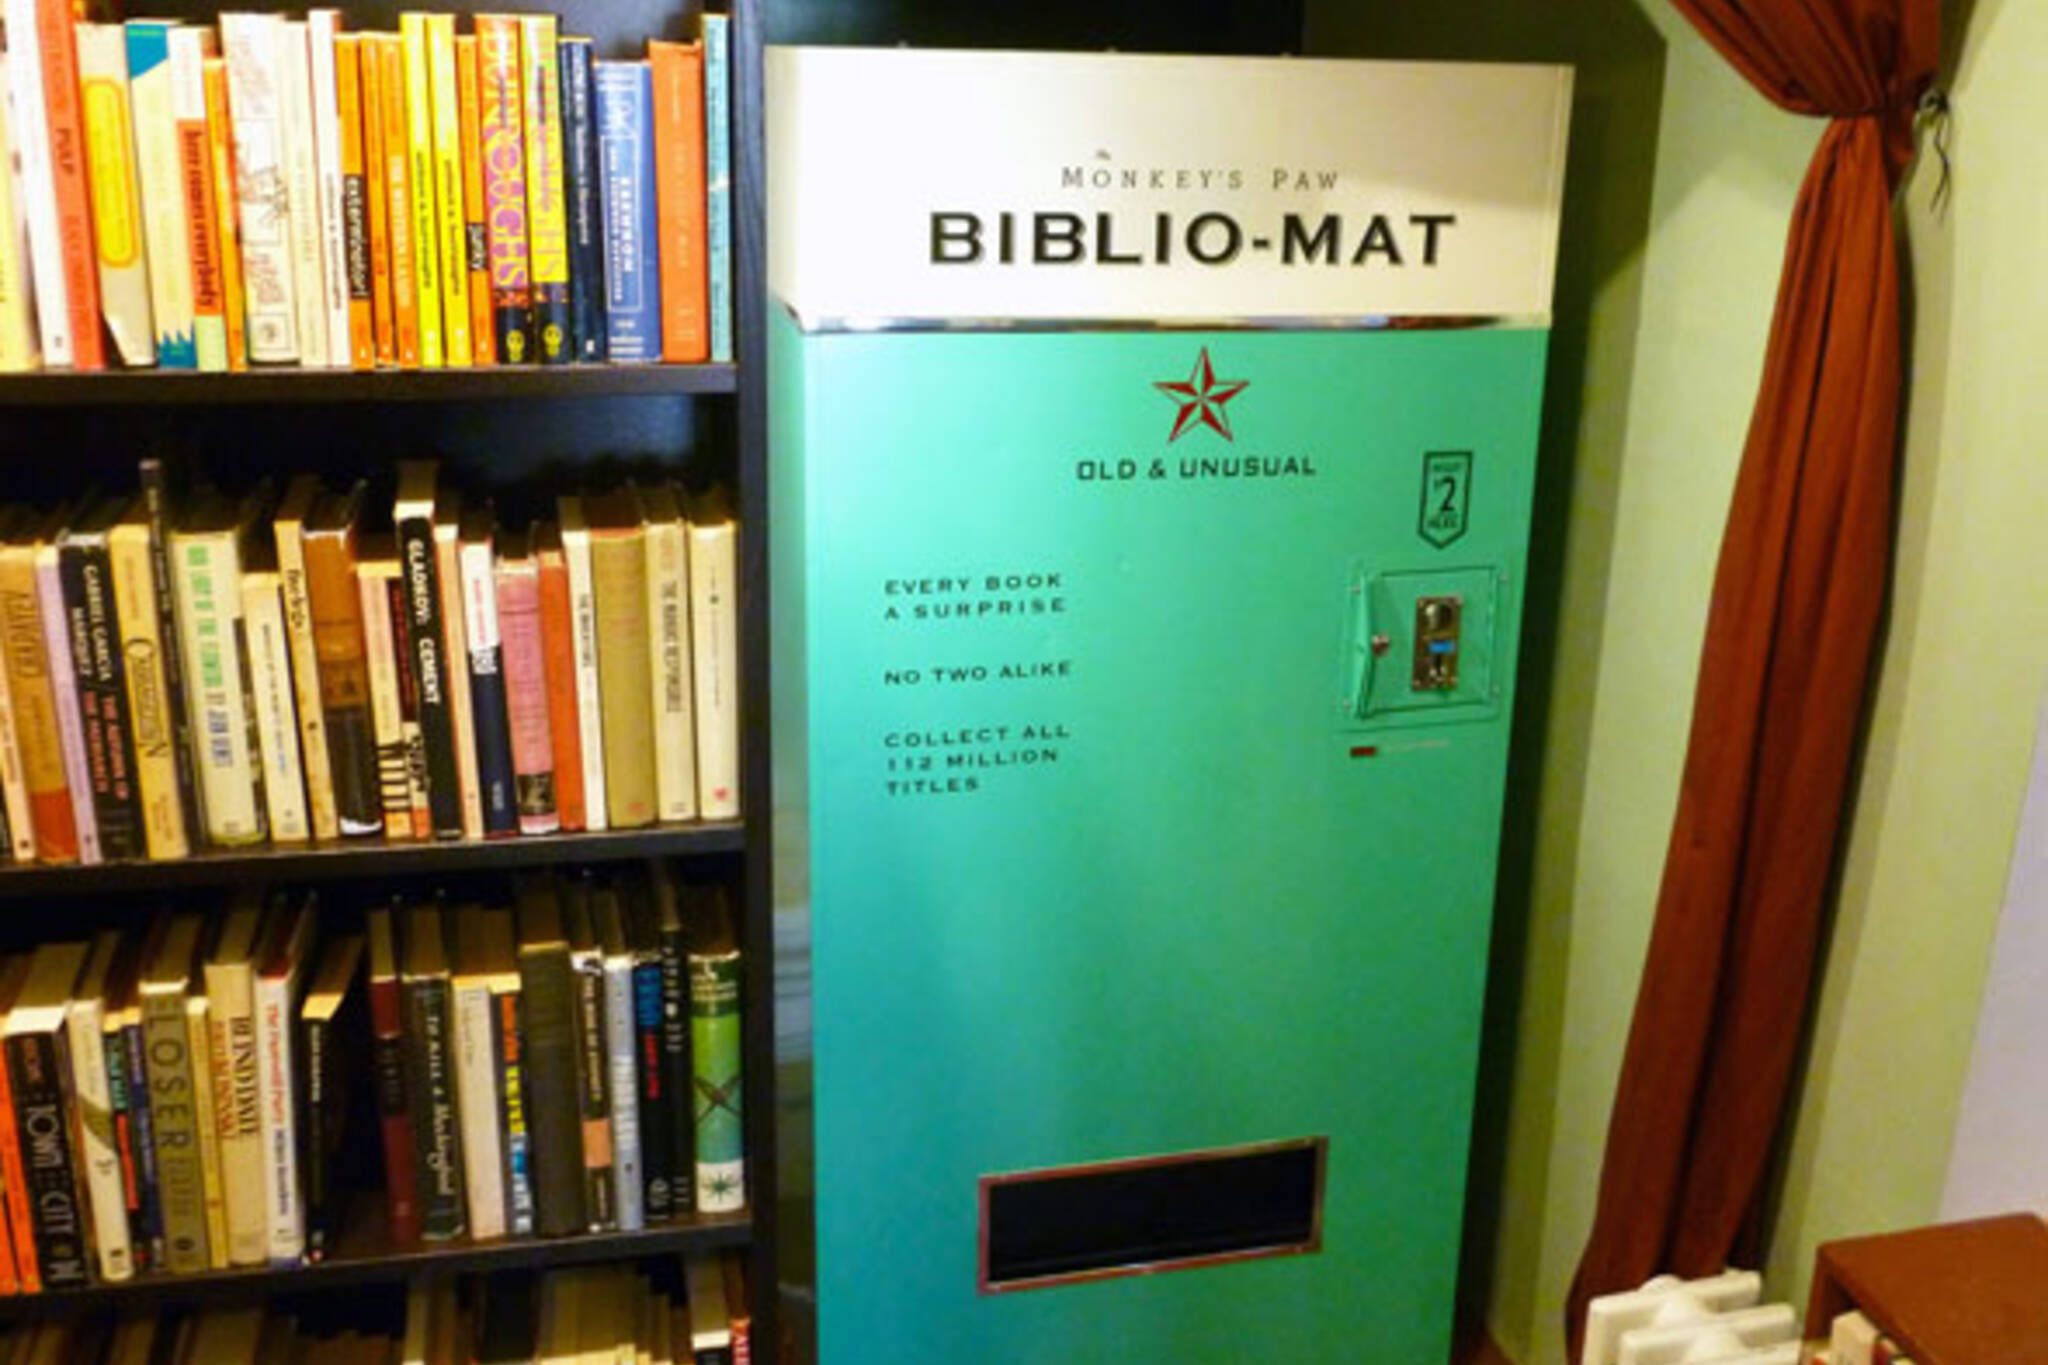 toronto monkey's paw book vending machine